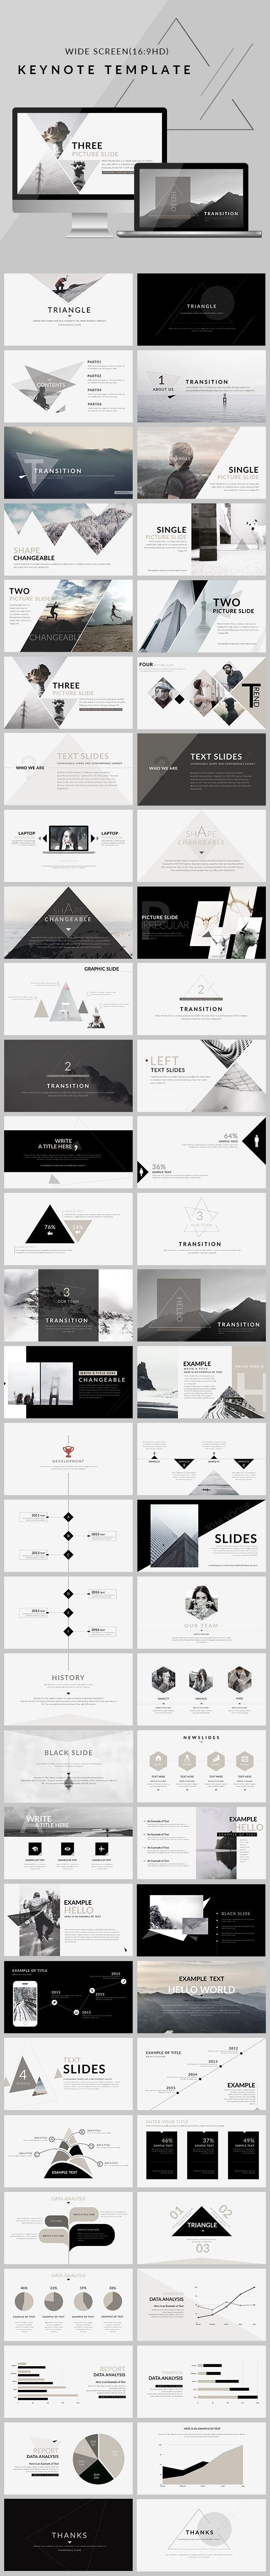 Cool Triangle - Clean trend Keynote Template  • Only available here ➝ http://graphicriver.net/item/triangle-clean-trend-keynote-template/16272633?ref=pxcr